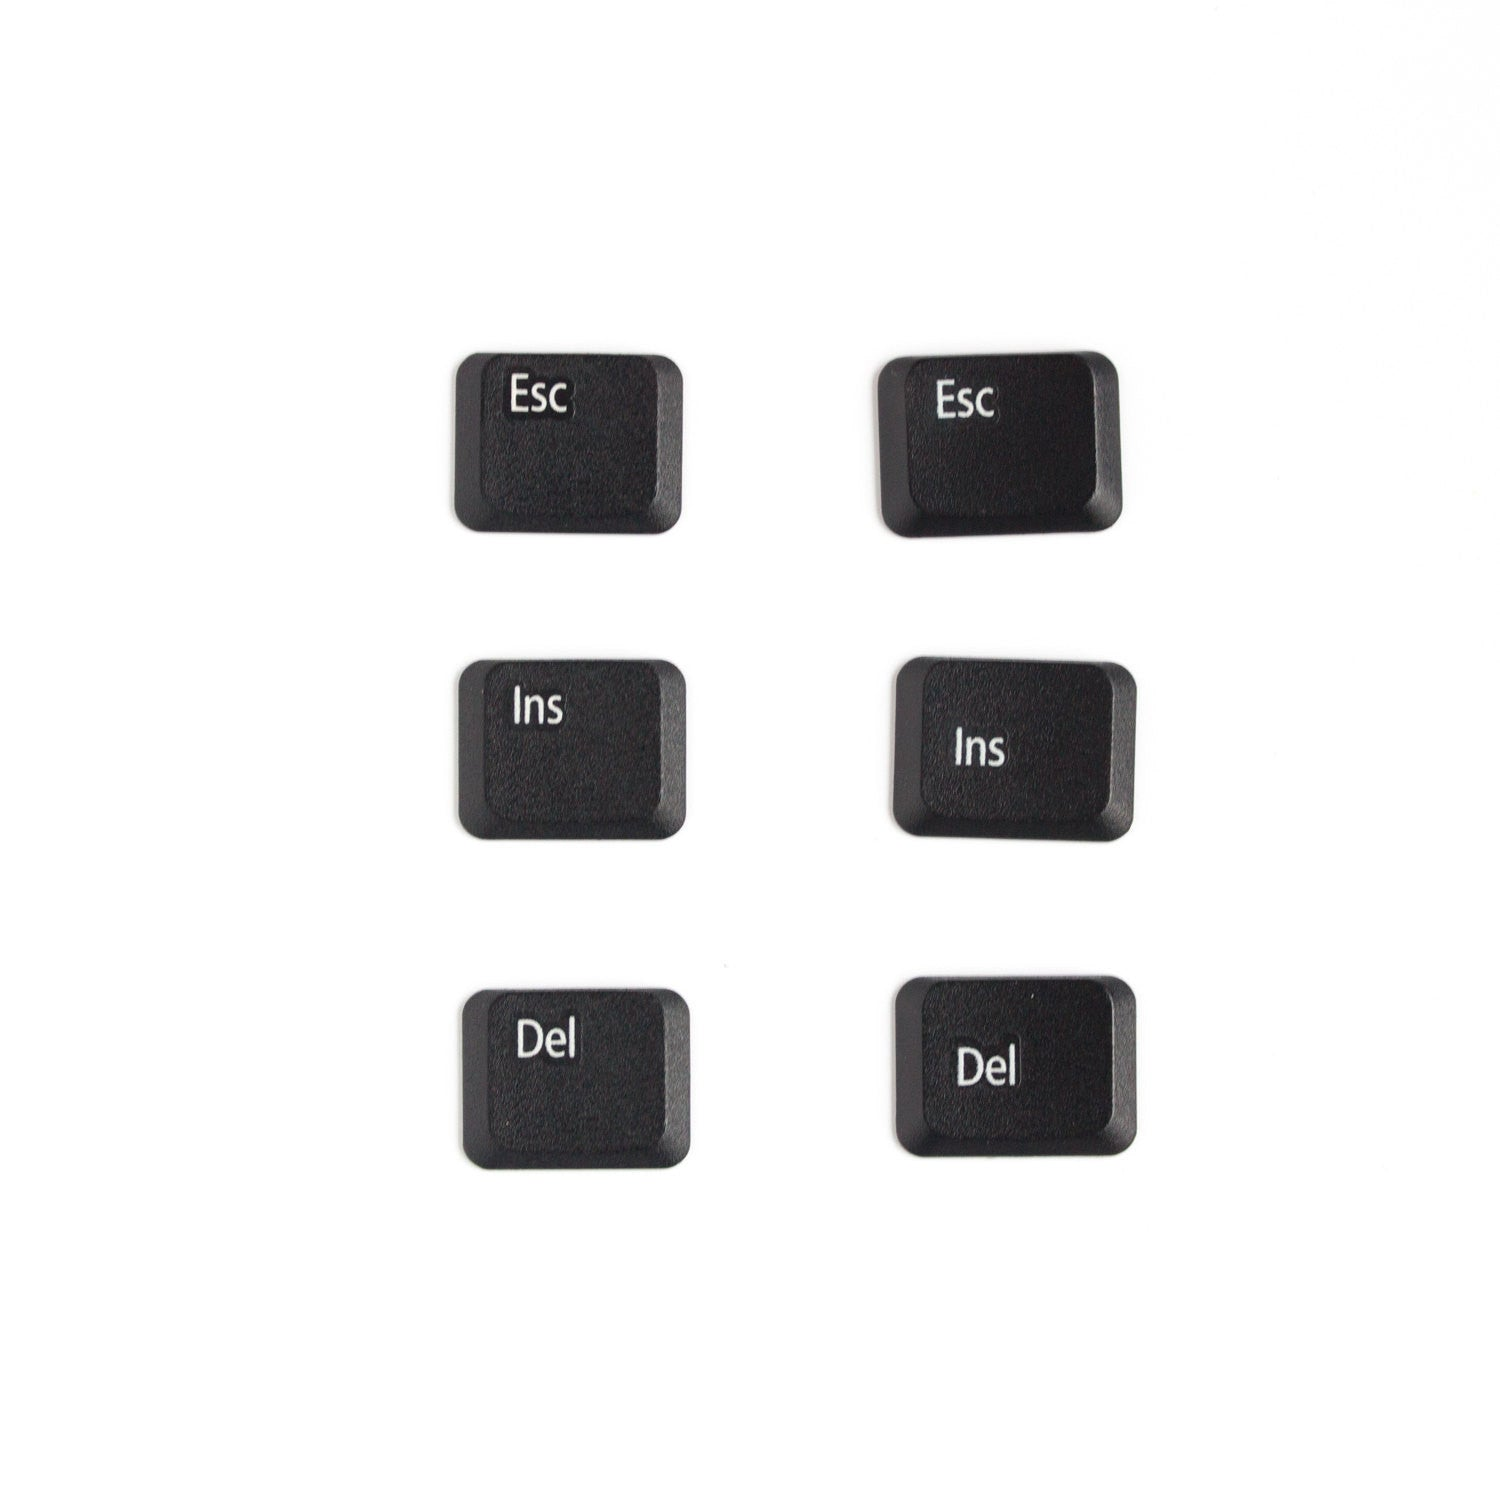 Geeky Set of Fridge Magnets, 6 computer button magnets